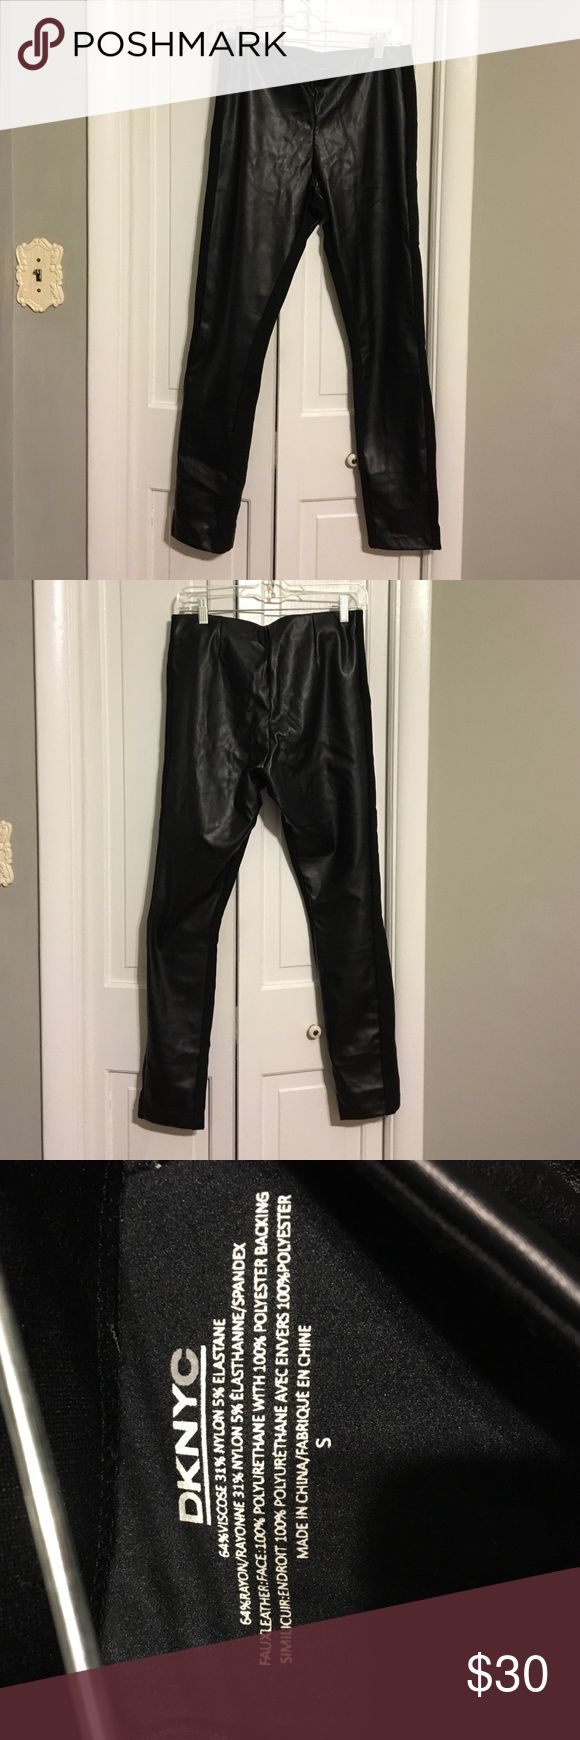 DKNY black faux leather panel leggings size S Like new! Front panels are faux leather with a narrow strip of stretchy material up the sides, which helps them hug your body in all the right spots. Super versatile... and 🔥🔥🔥. Bundle and save 💸🙌🏽👌🏽 DKNYC Pants Leggings